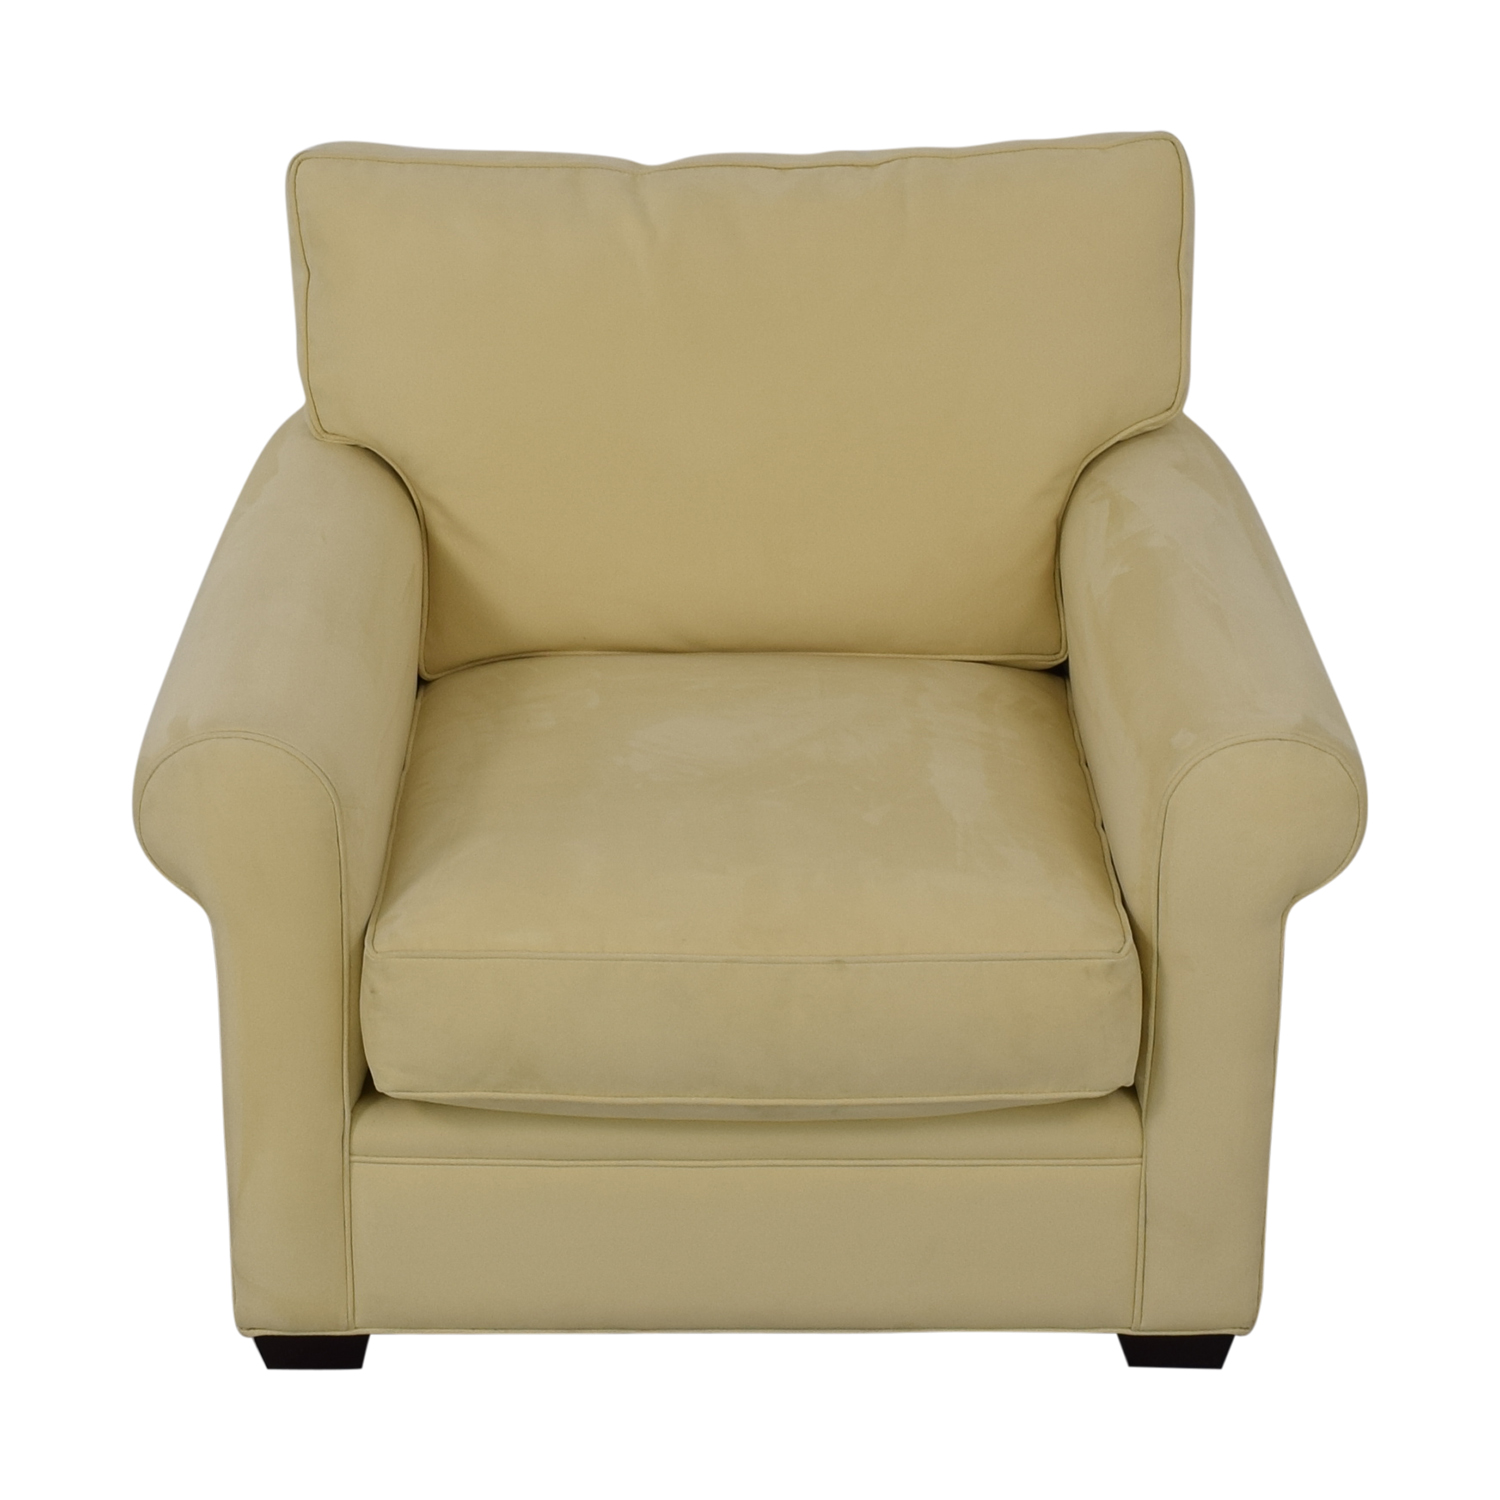 Crate & Barrel Crate & Barrel Yellow Oversized Accent Chair